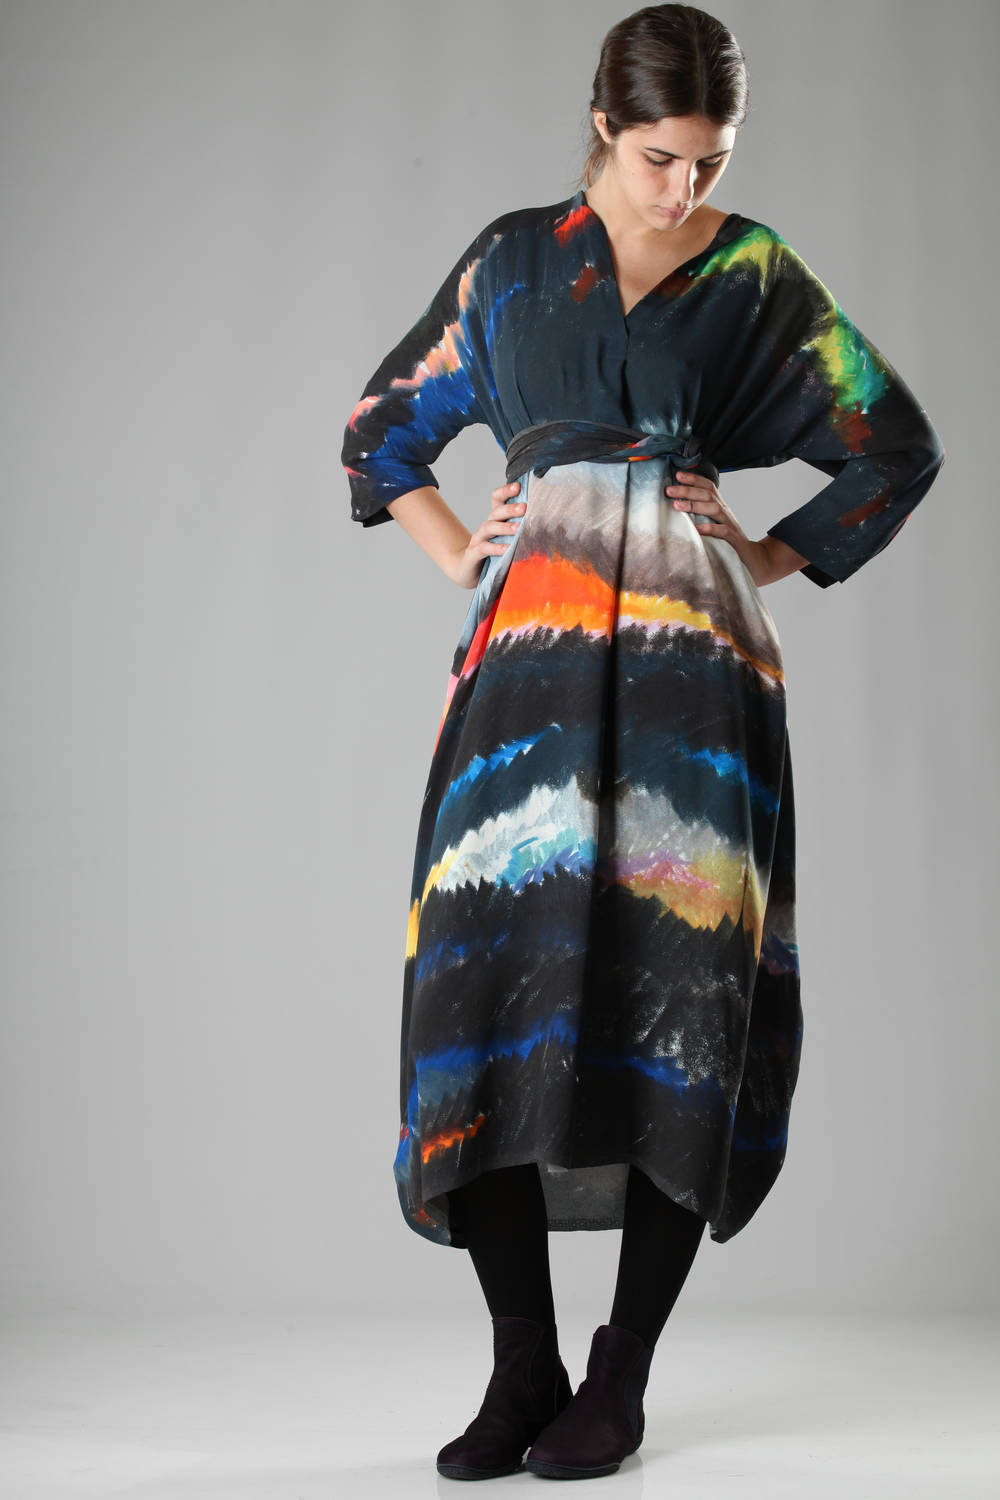 daniela gregis fw 2016 multicolor dress-5